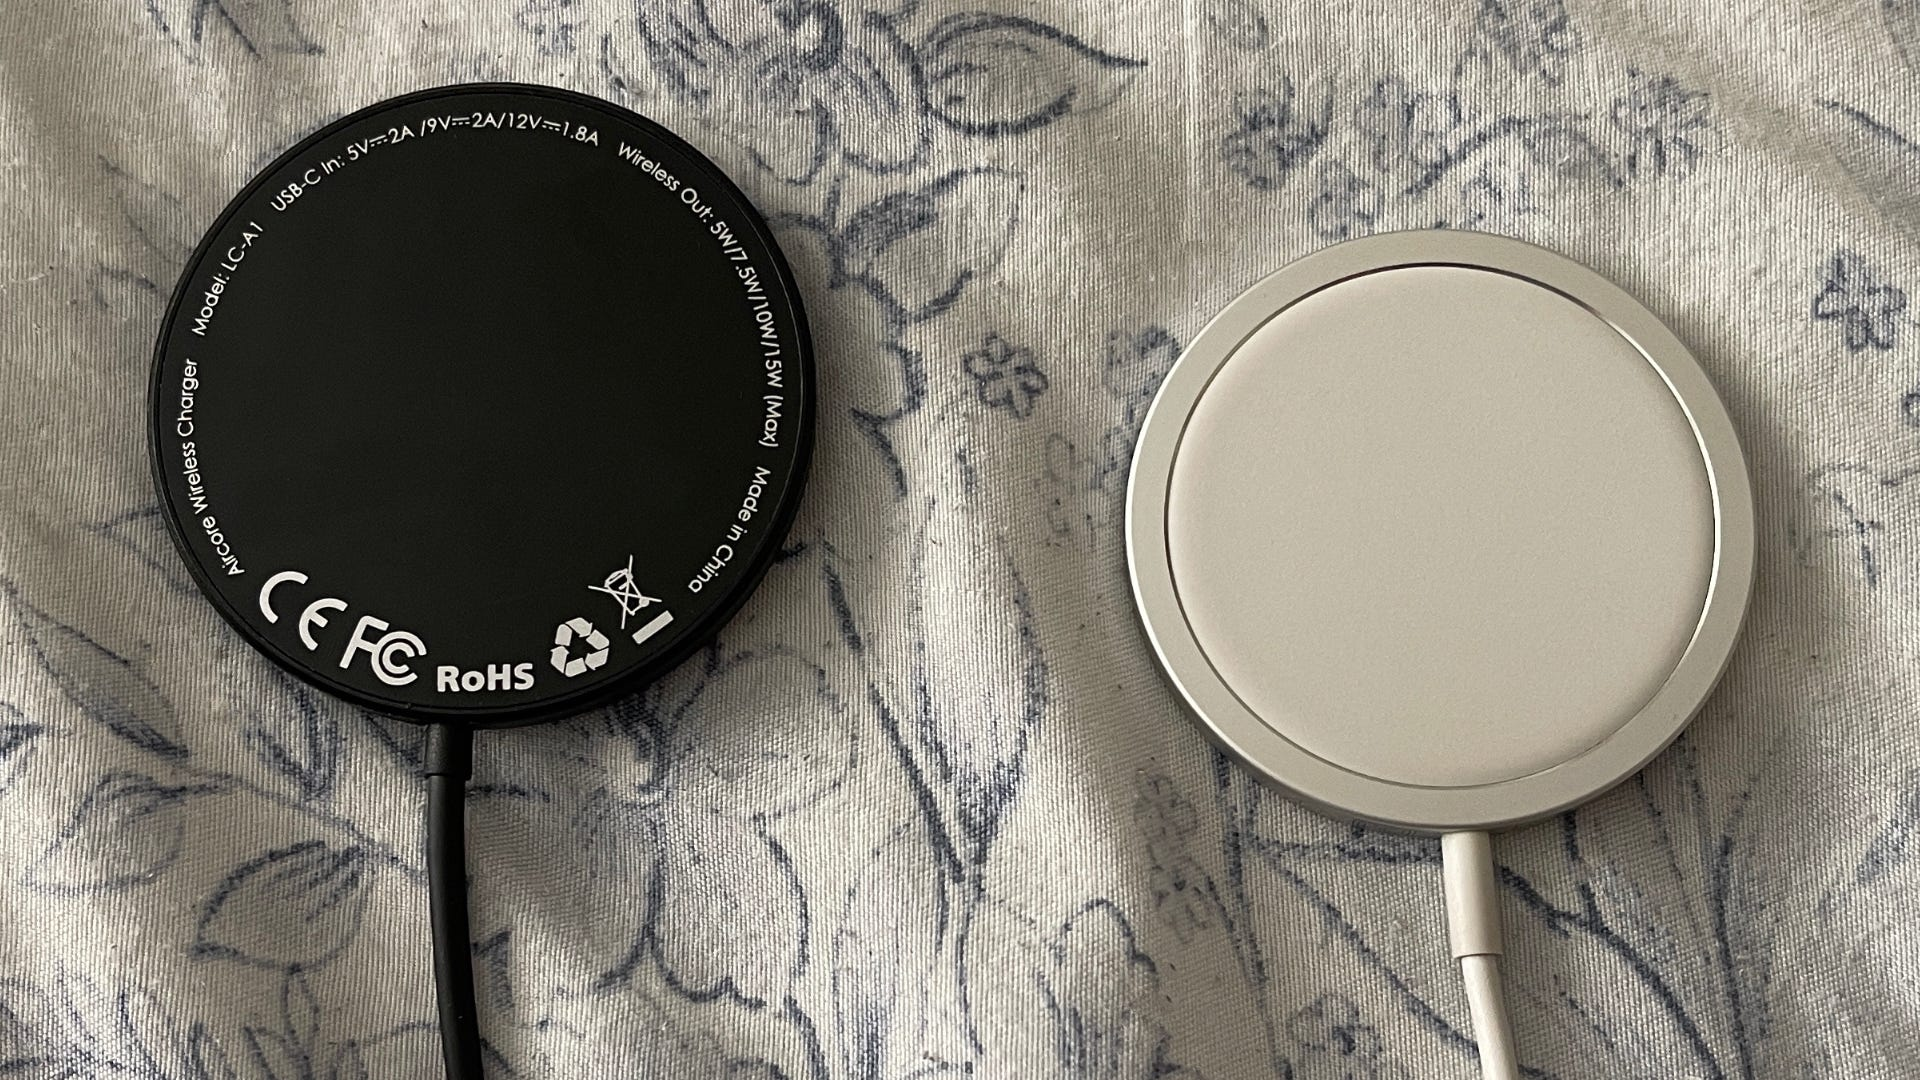 Aukey Aircore wireless charger vs. Apple MagSafe charger